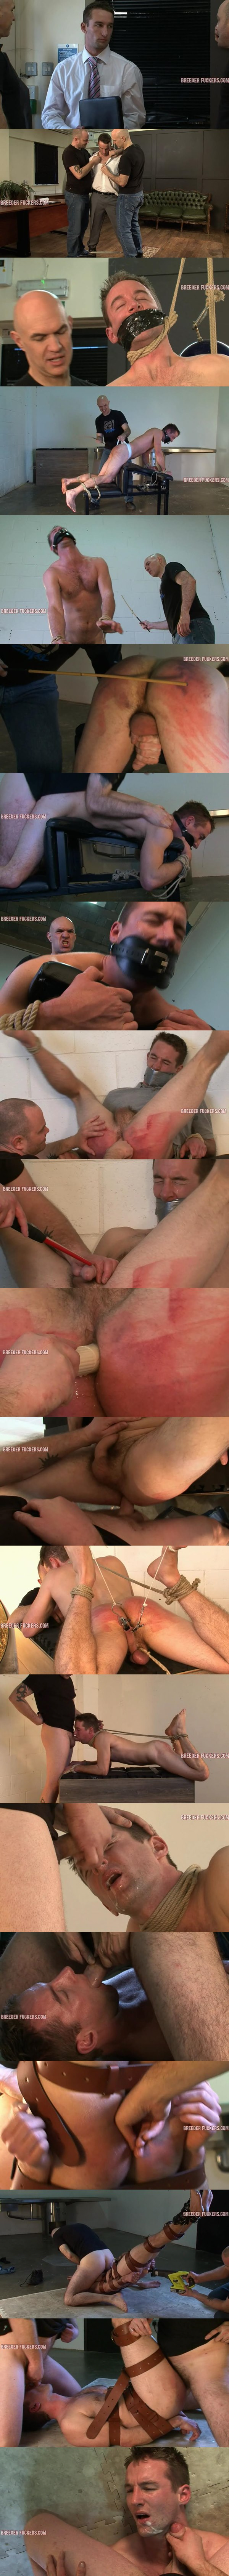 Macho straight man Shamus gets disciplined and humiliated by skinhead masters Adrian and Dave at Breederfuckers 02